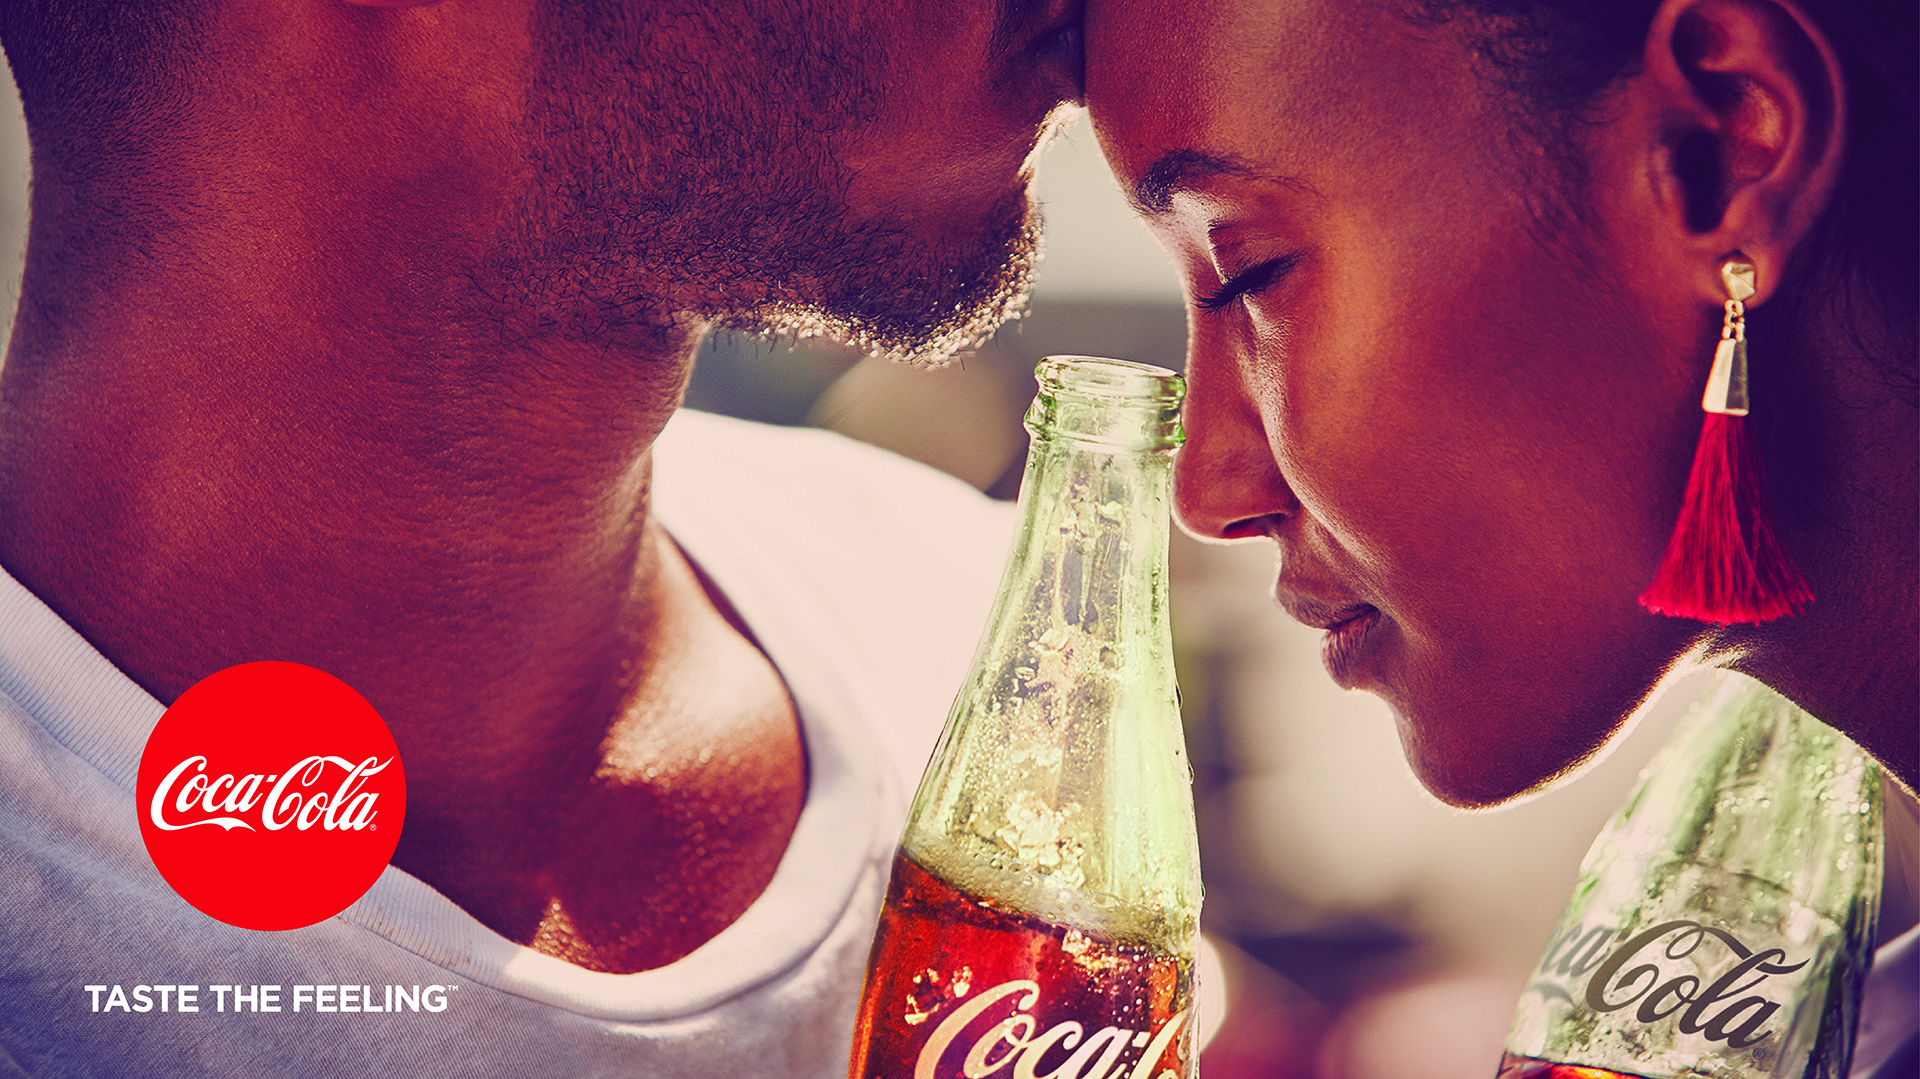 coca cola commercial Coca-cola gold feelings commercial song taste the feeling by avicii vs conrad sewell.